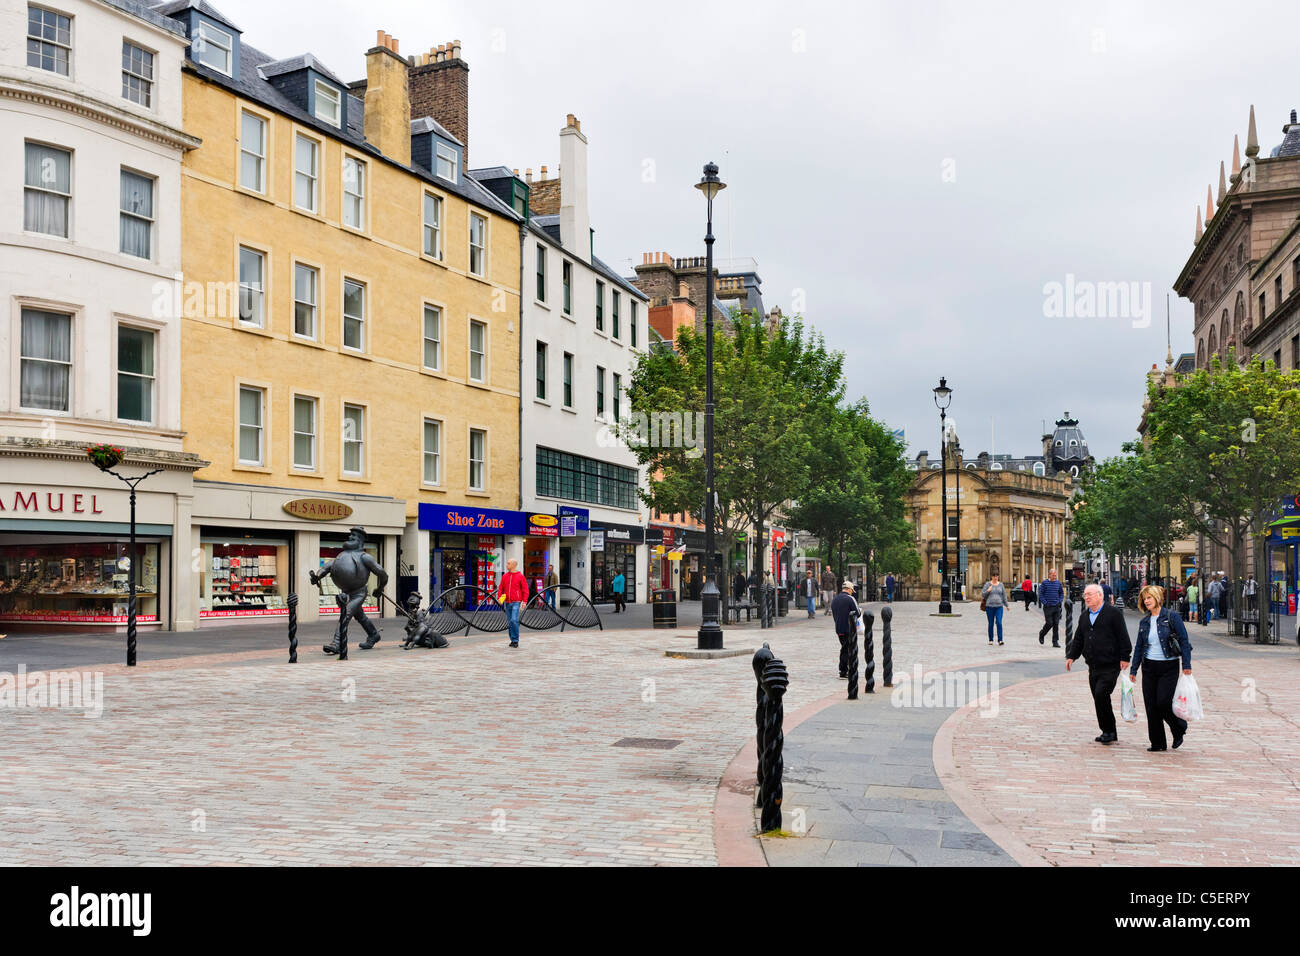 City Square in the town centre, Dundee, Central Lowlands, Scotland, UK - Stock Image